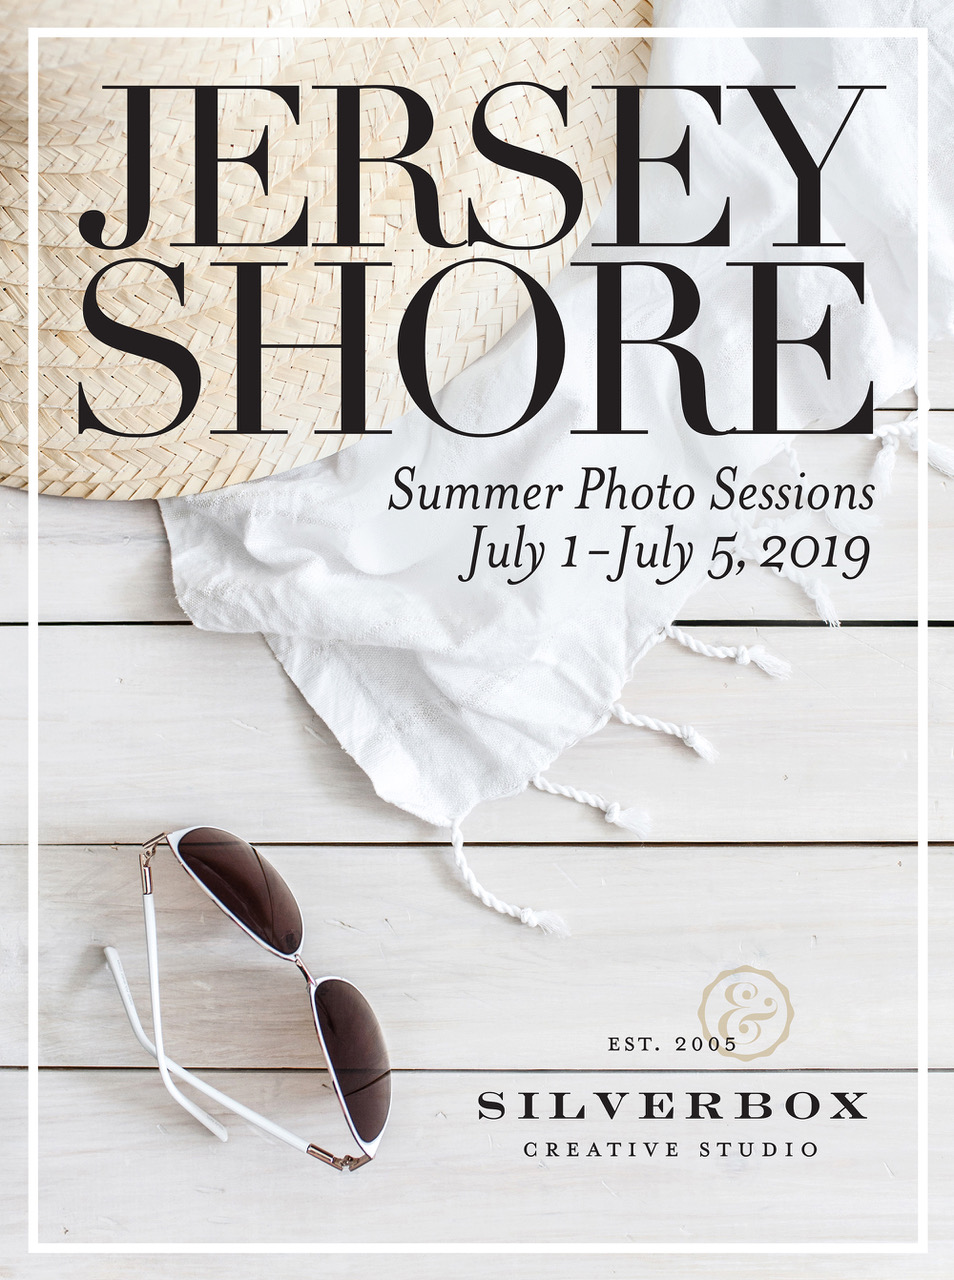 silverbox-creative-jersey-shore-sessions